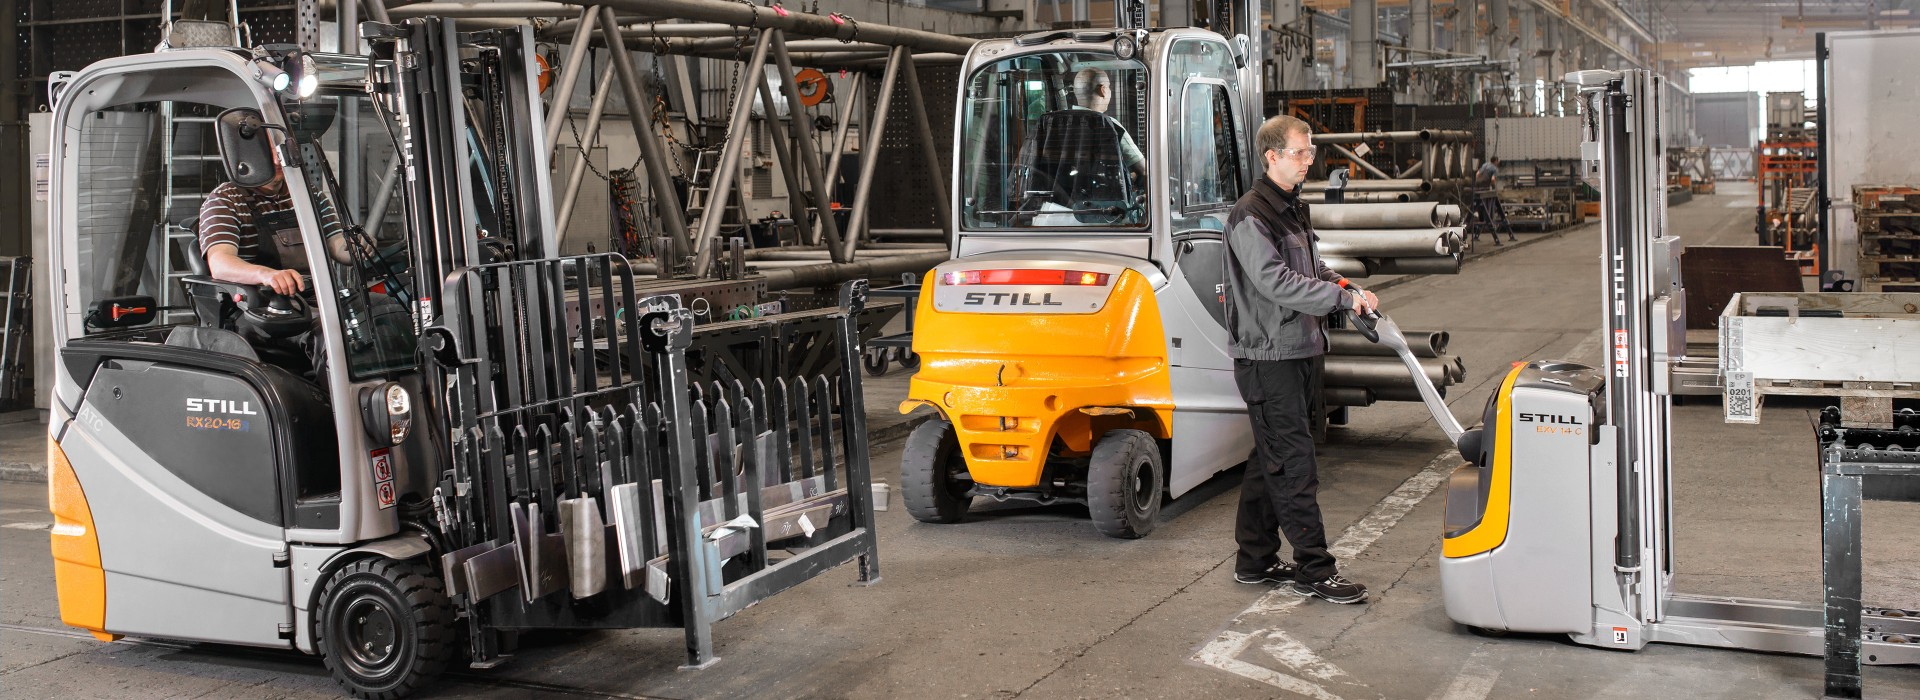 First class products: Forklifts Trucks